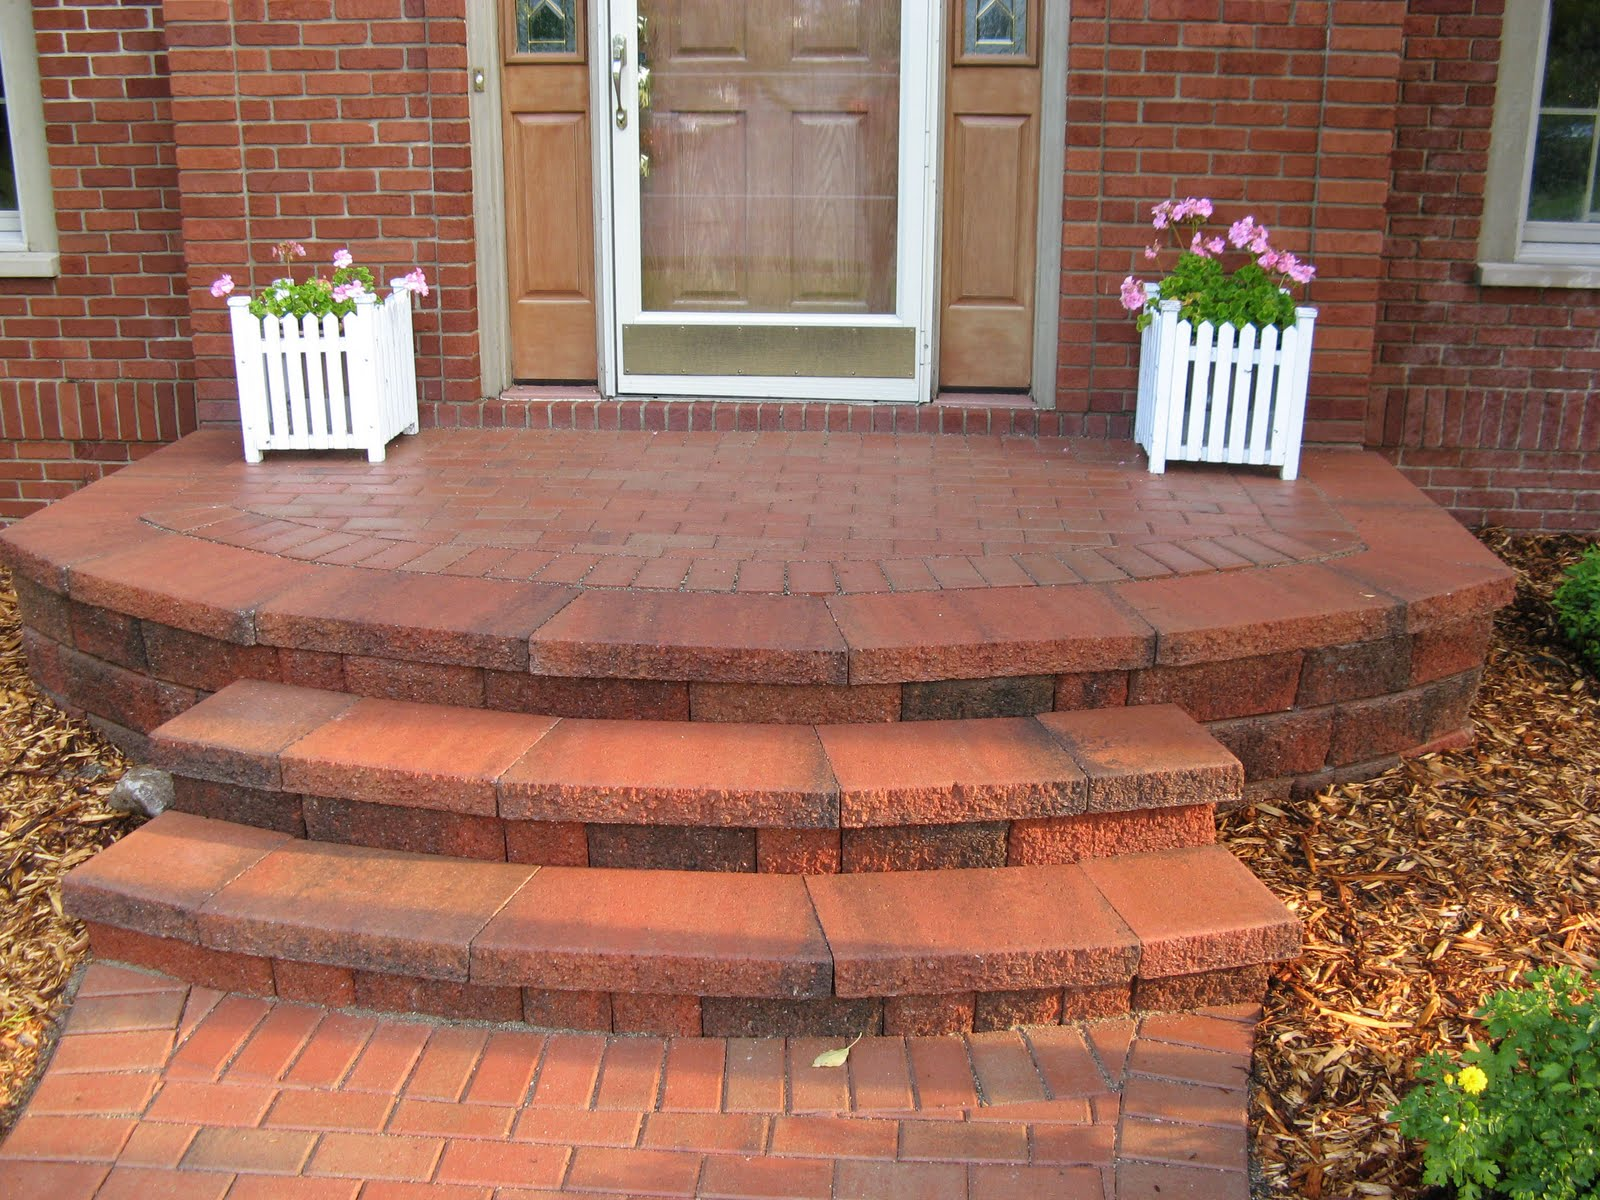 Brick pavers canton plymouth northville ann arbor patio for Brick steps design ideas